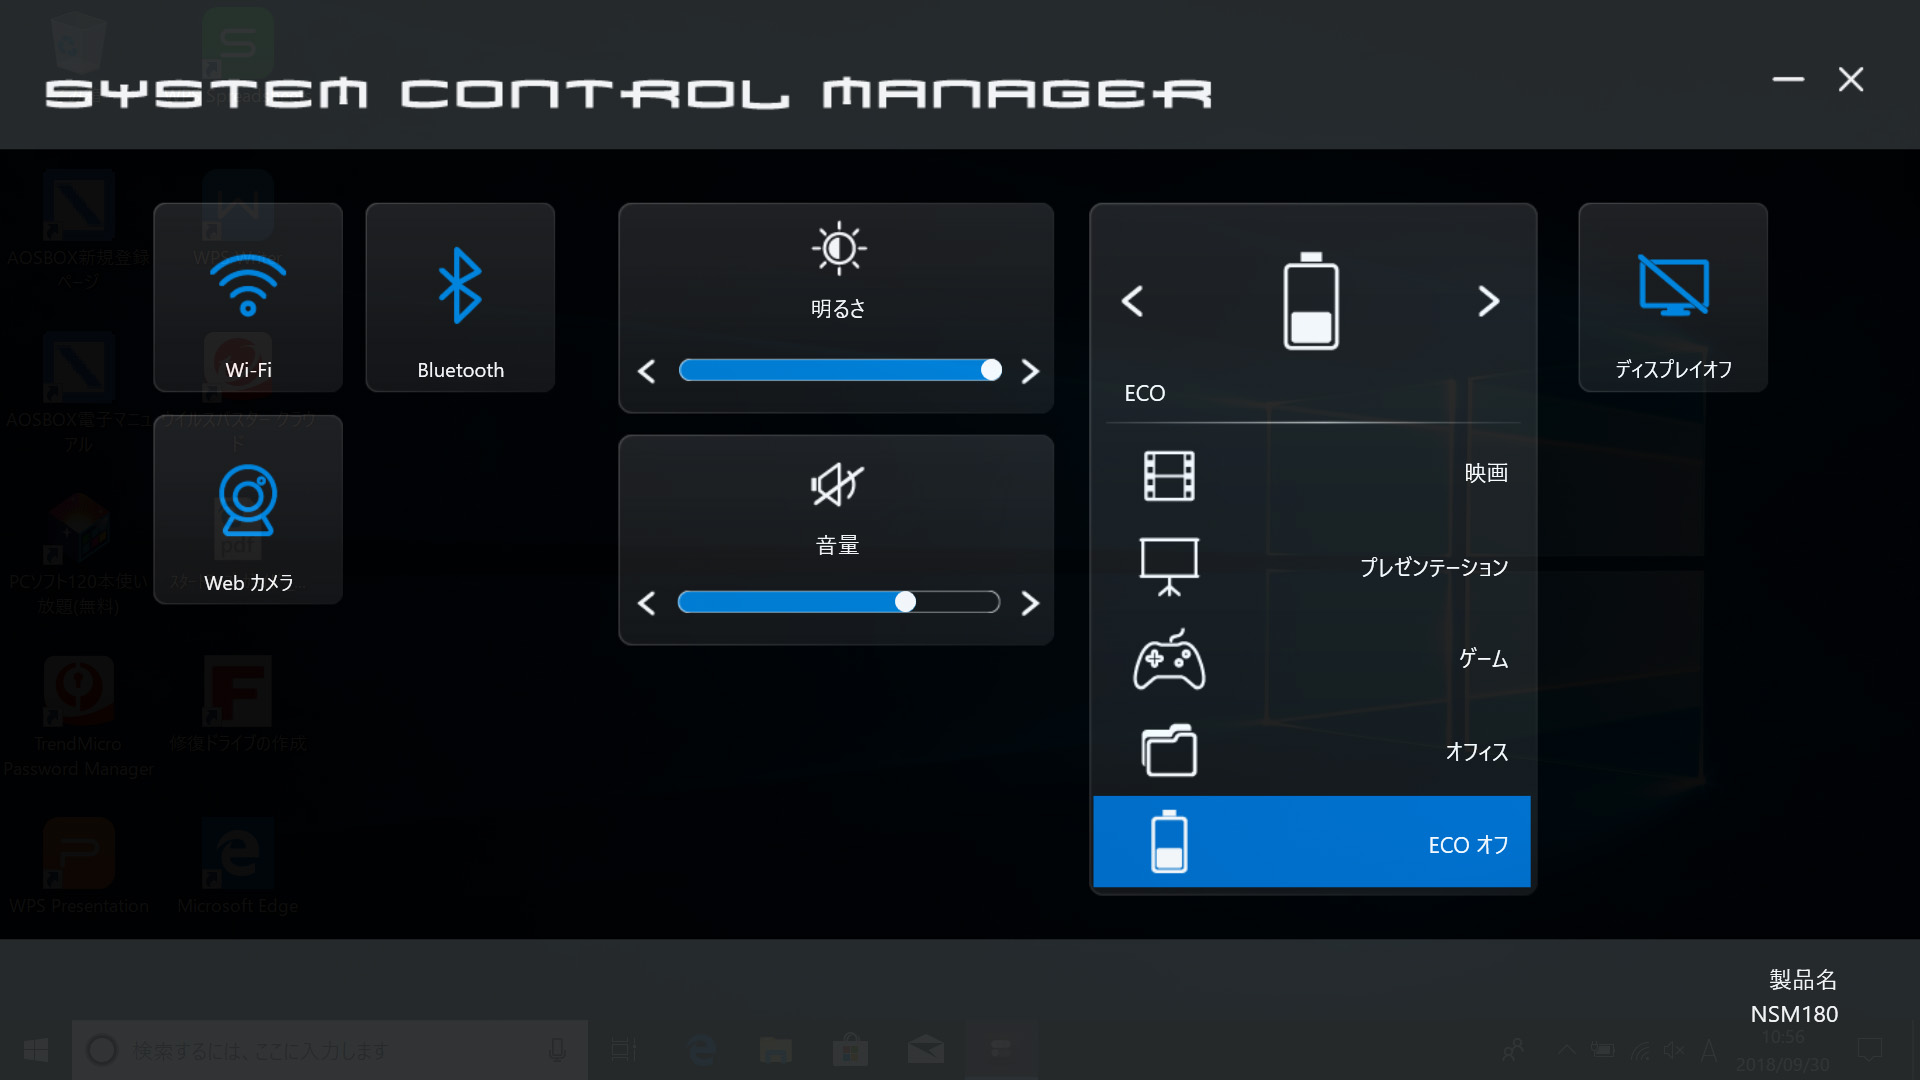 SYSTEM CONTROL MANAGER